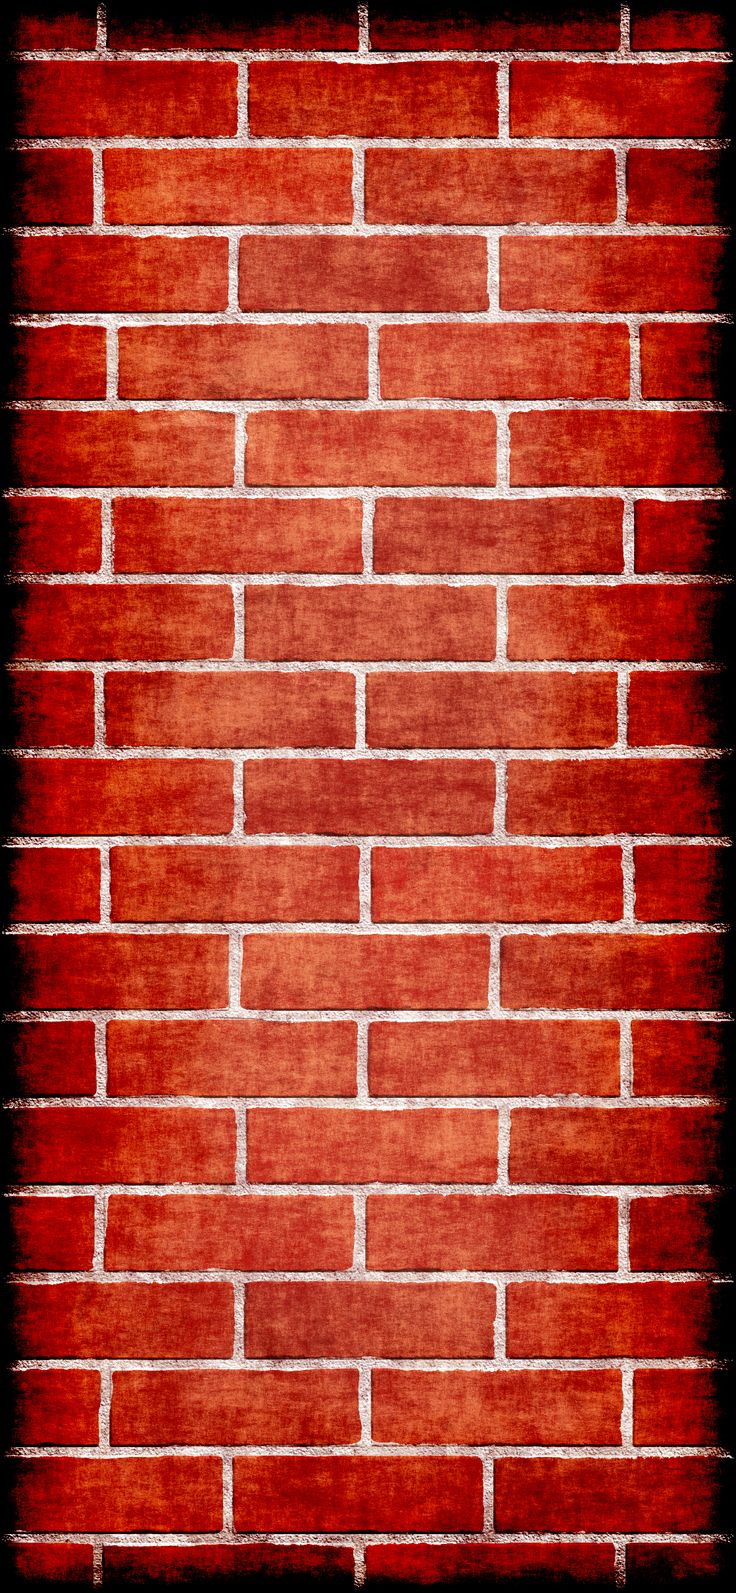 Grunge brick wall, iPhone X wallpaper Created by Angelo